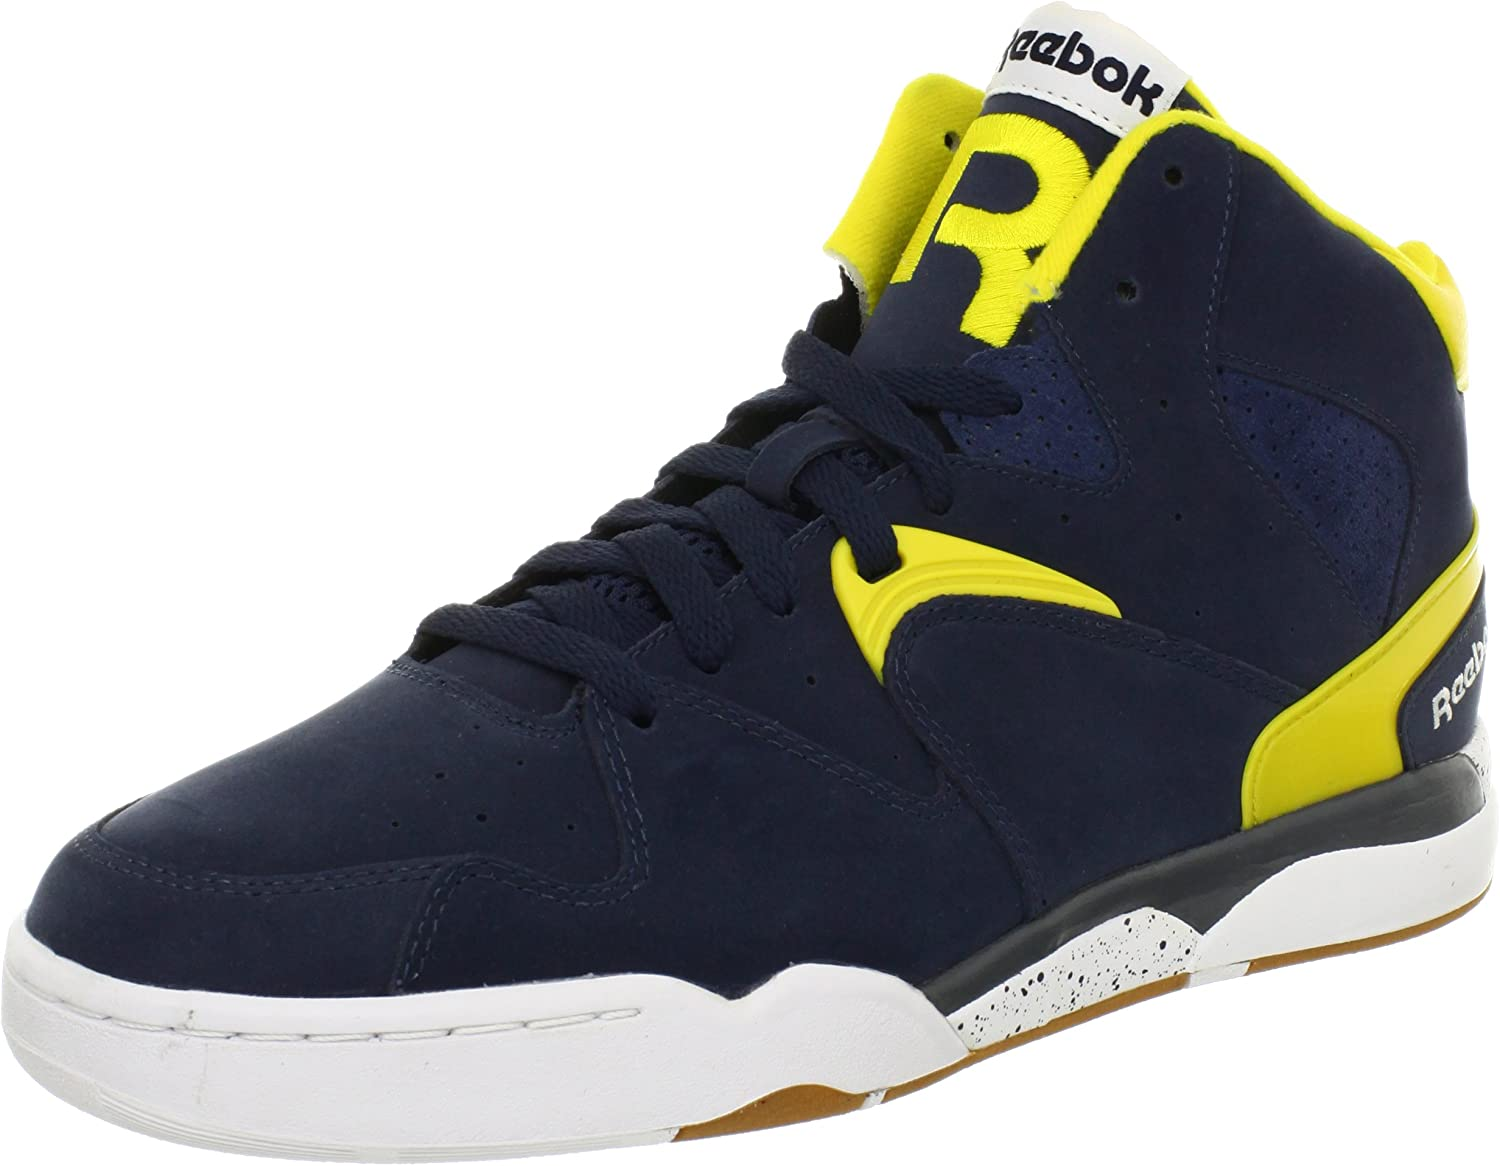 Efectivamente licencia casual  Amazon.com | Reebok Men's Classic Jam Fashion Sneaker | Fashion Sneakers